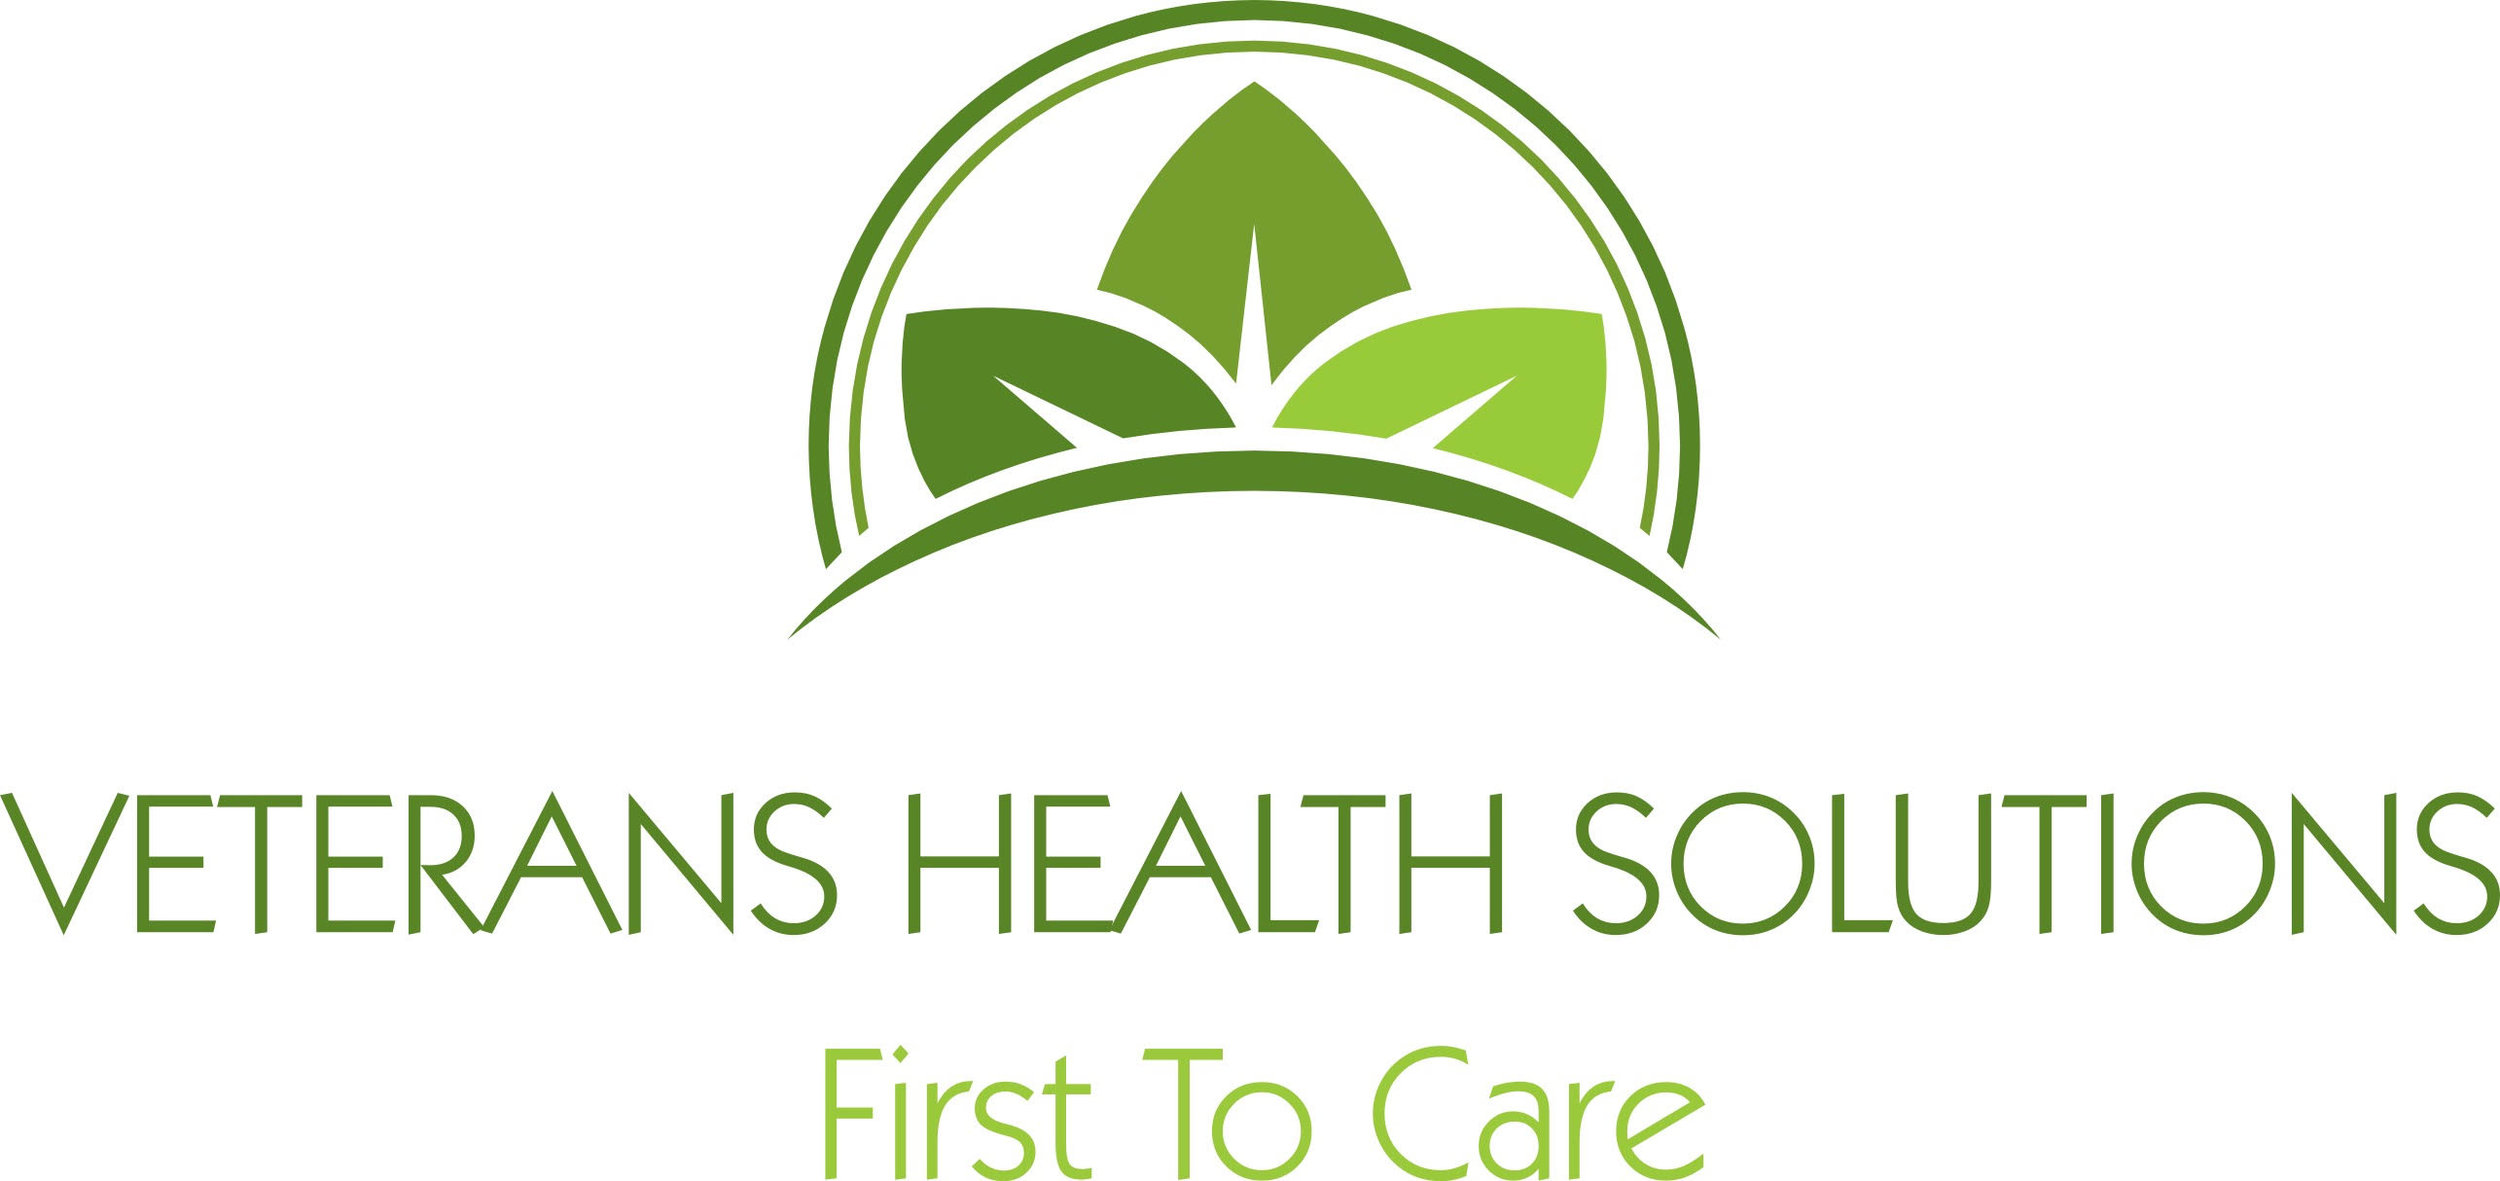 Veterans Health Solutions